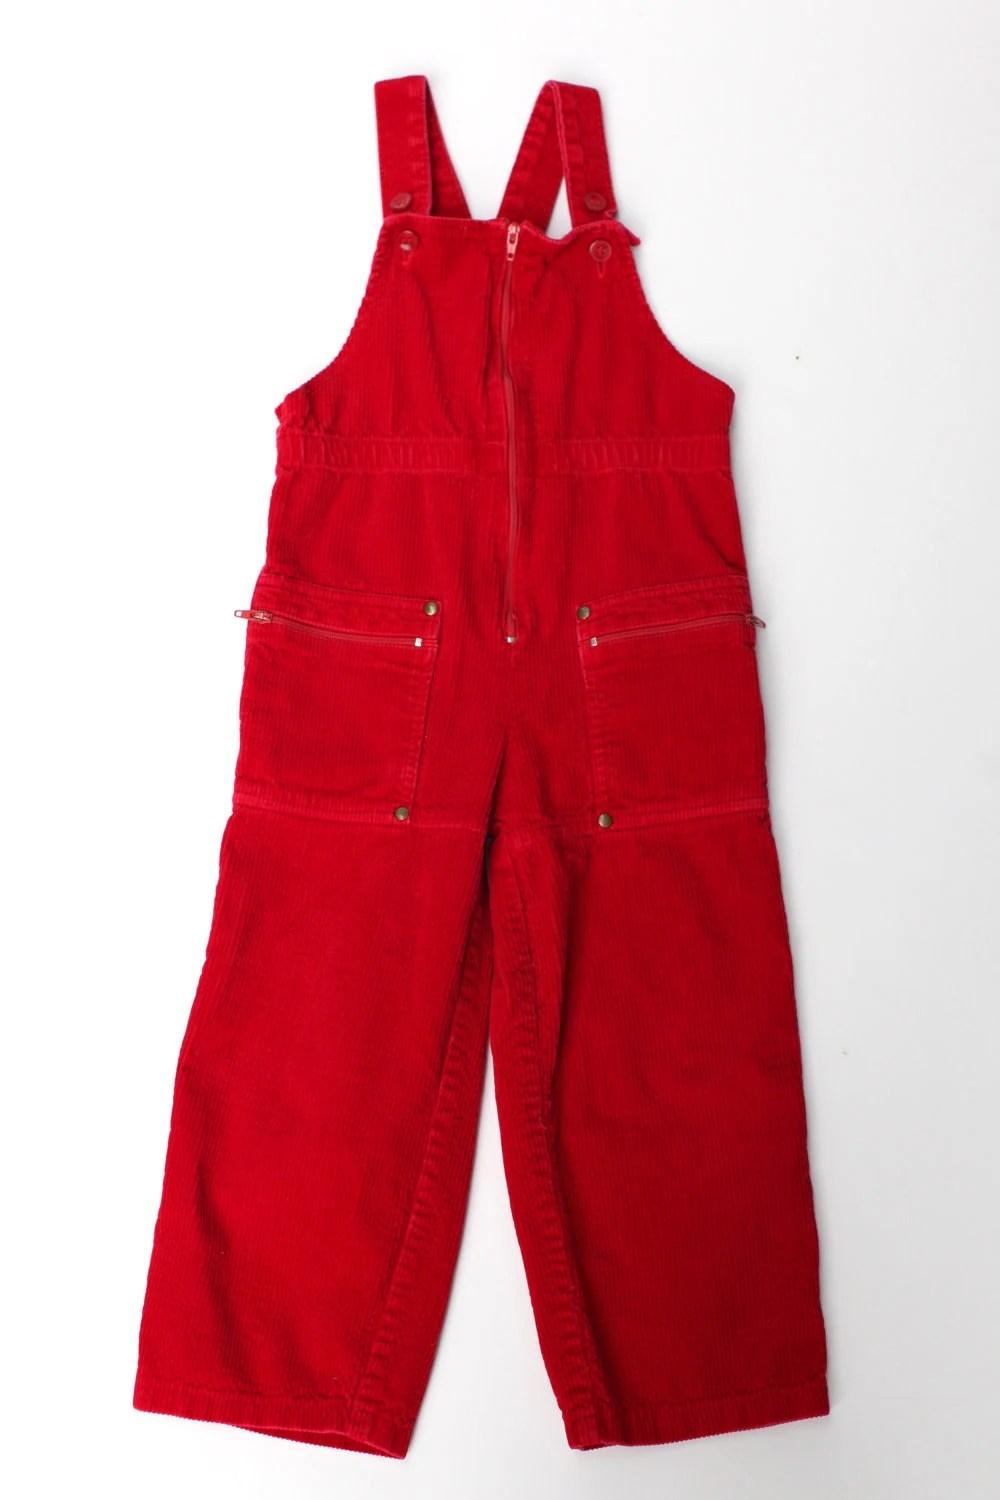 Size 3T Red Corduroy Overalls